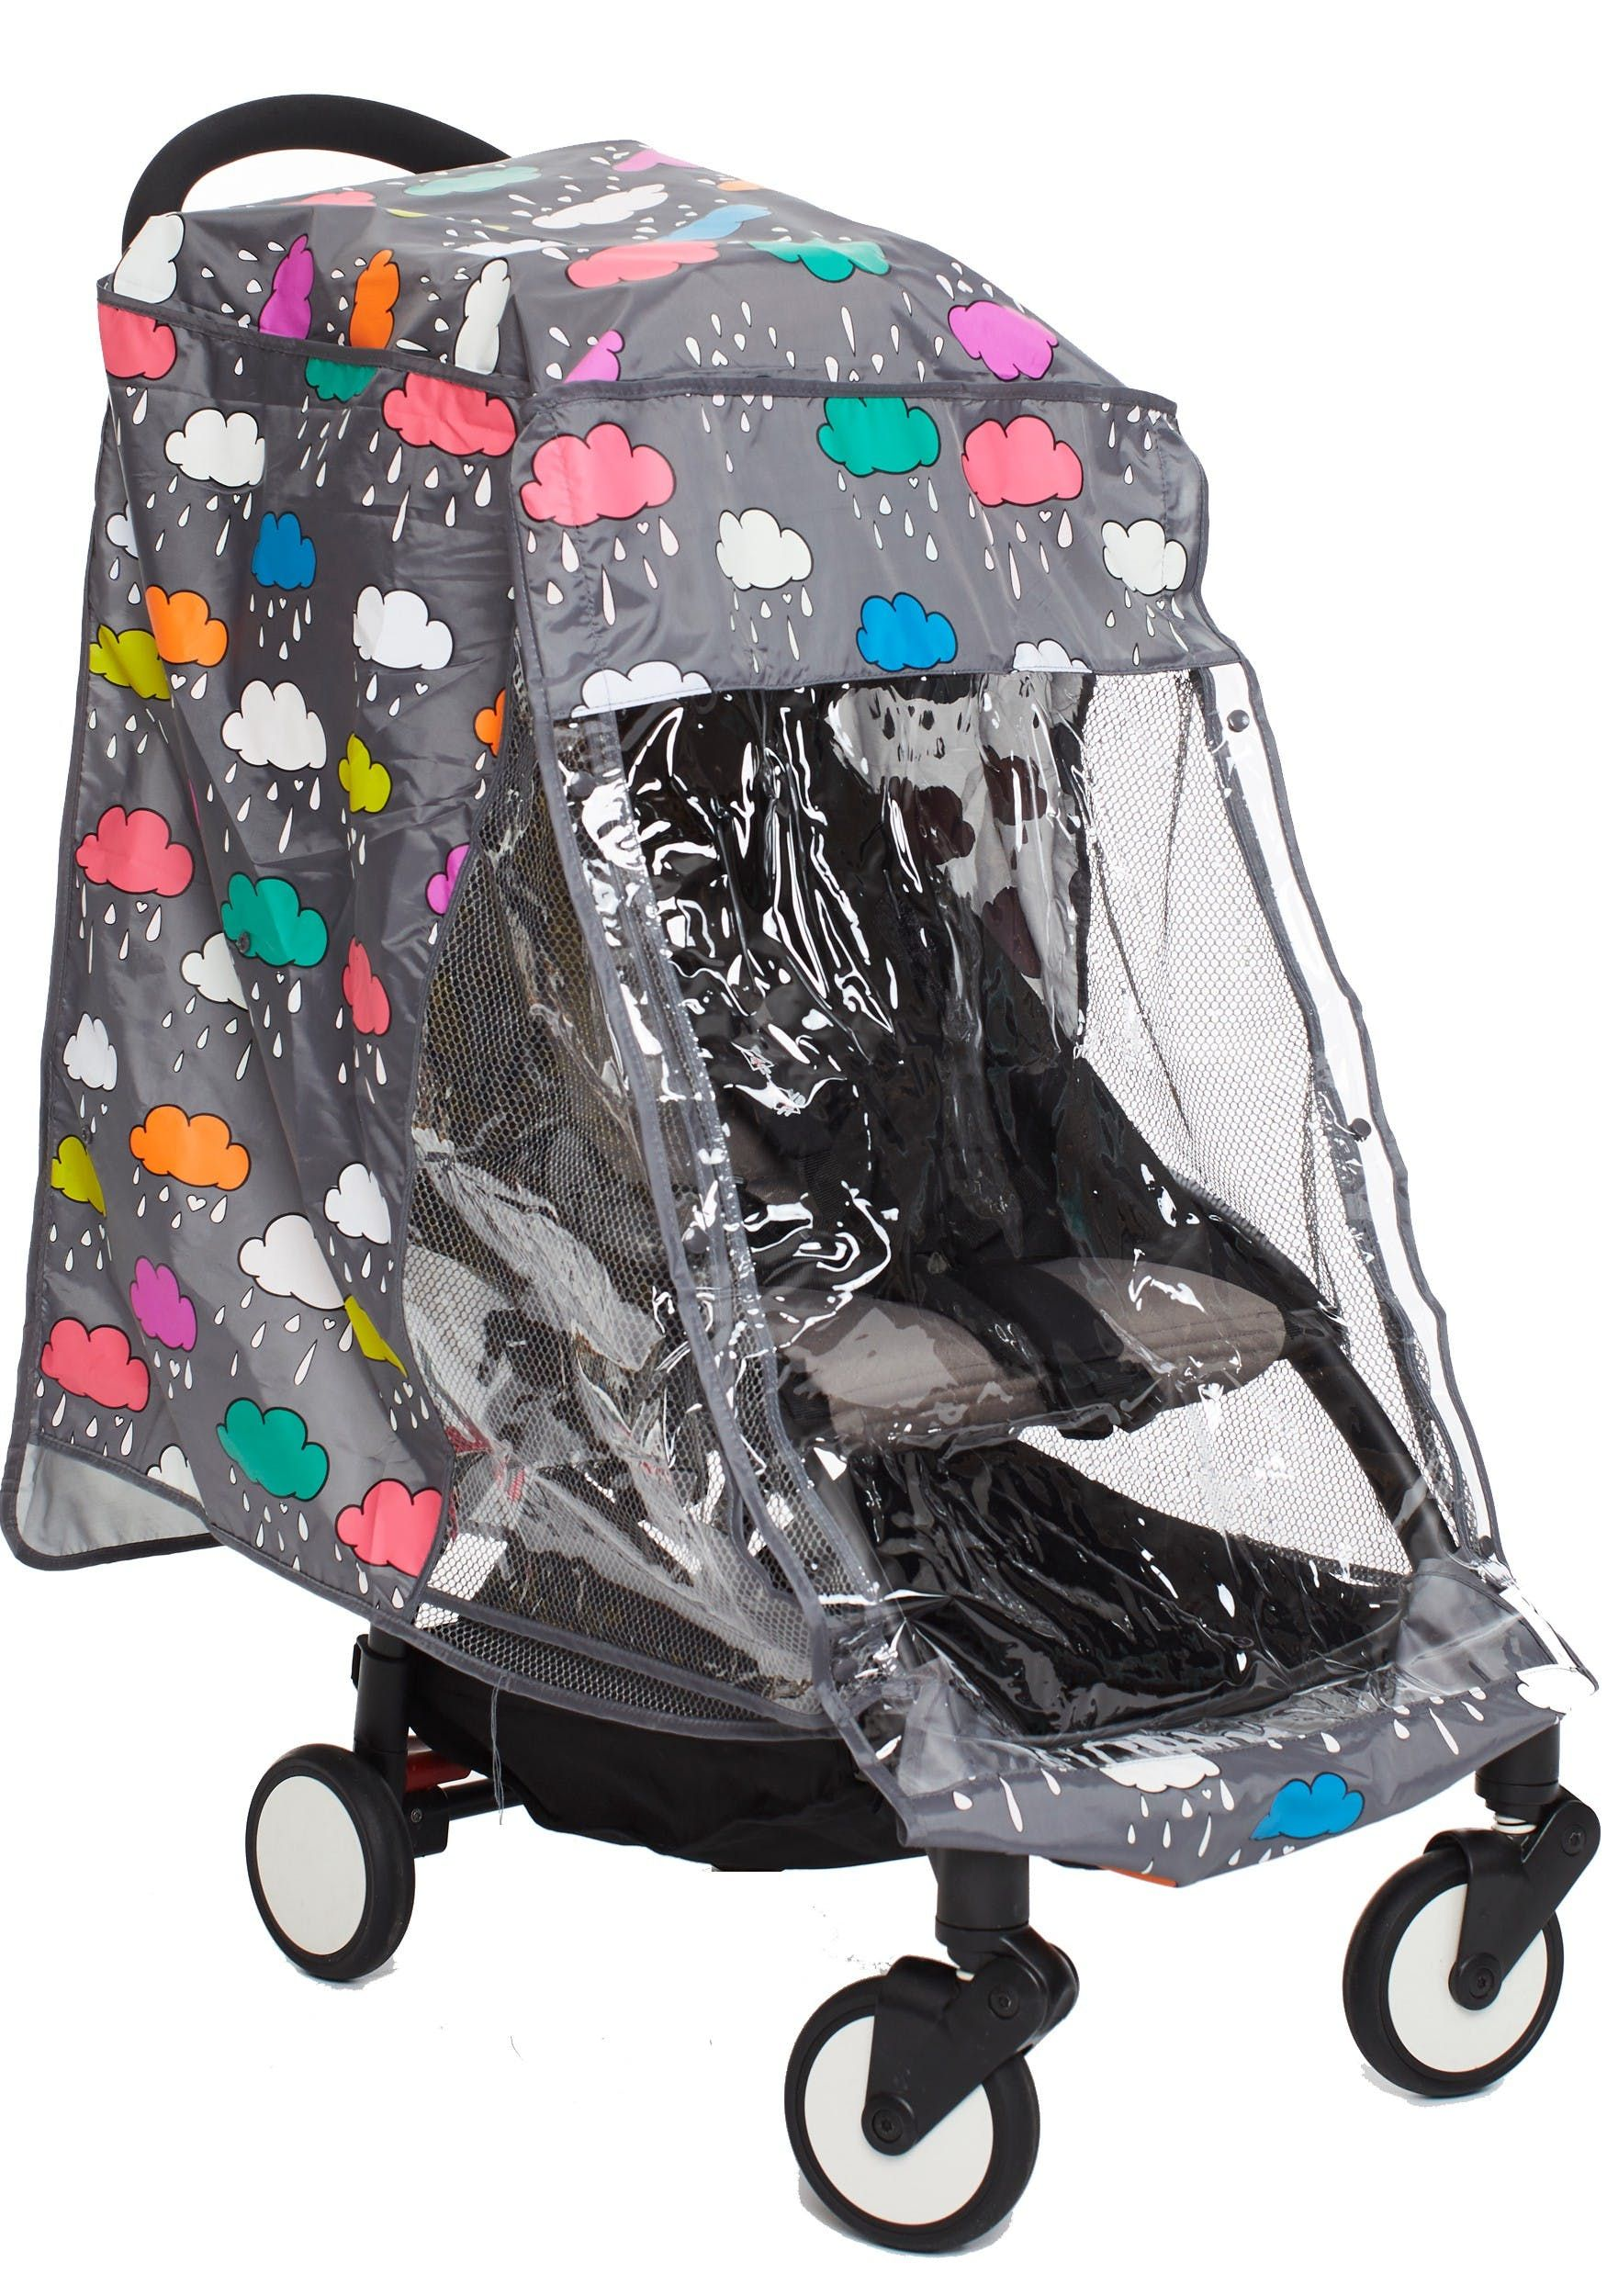 Stroller Rain Cover Rainy Day OS by Rosie Pope